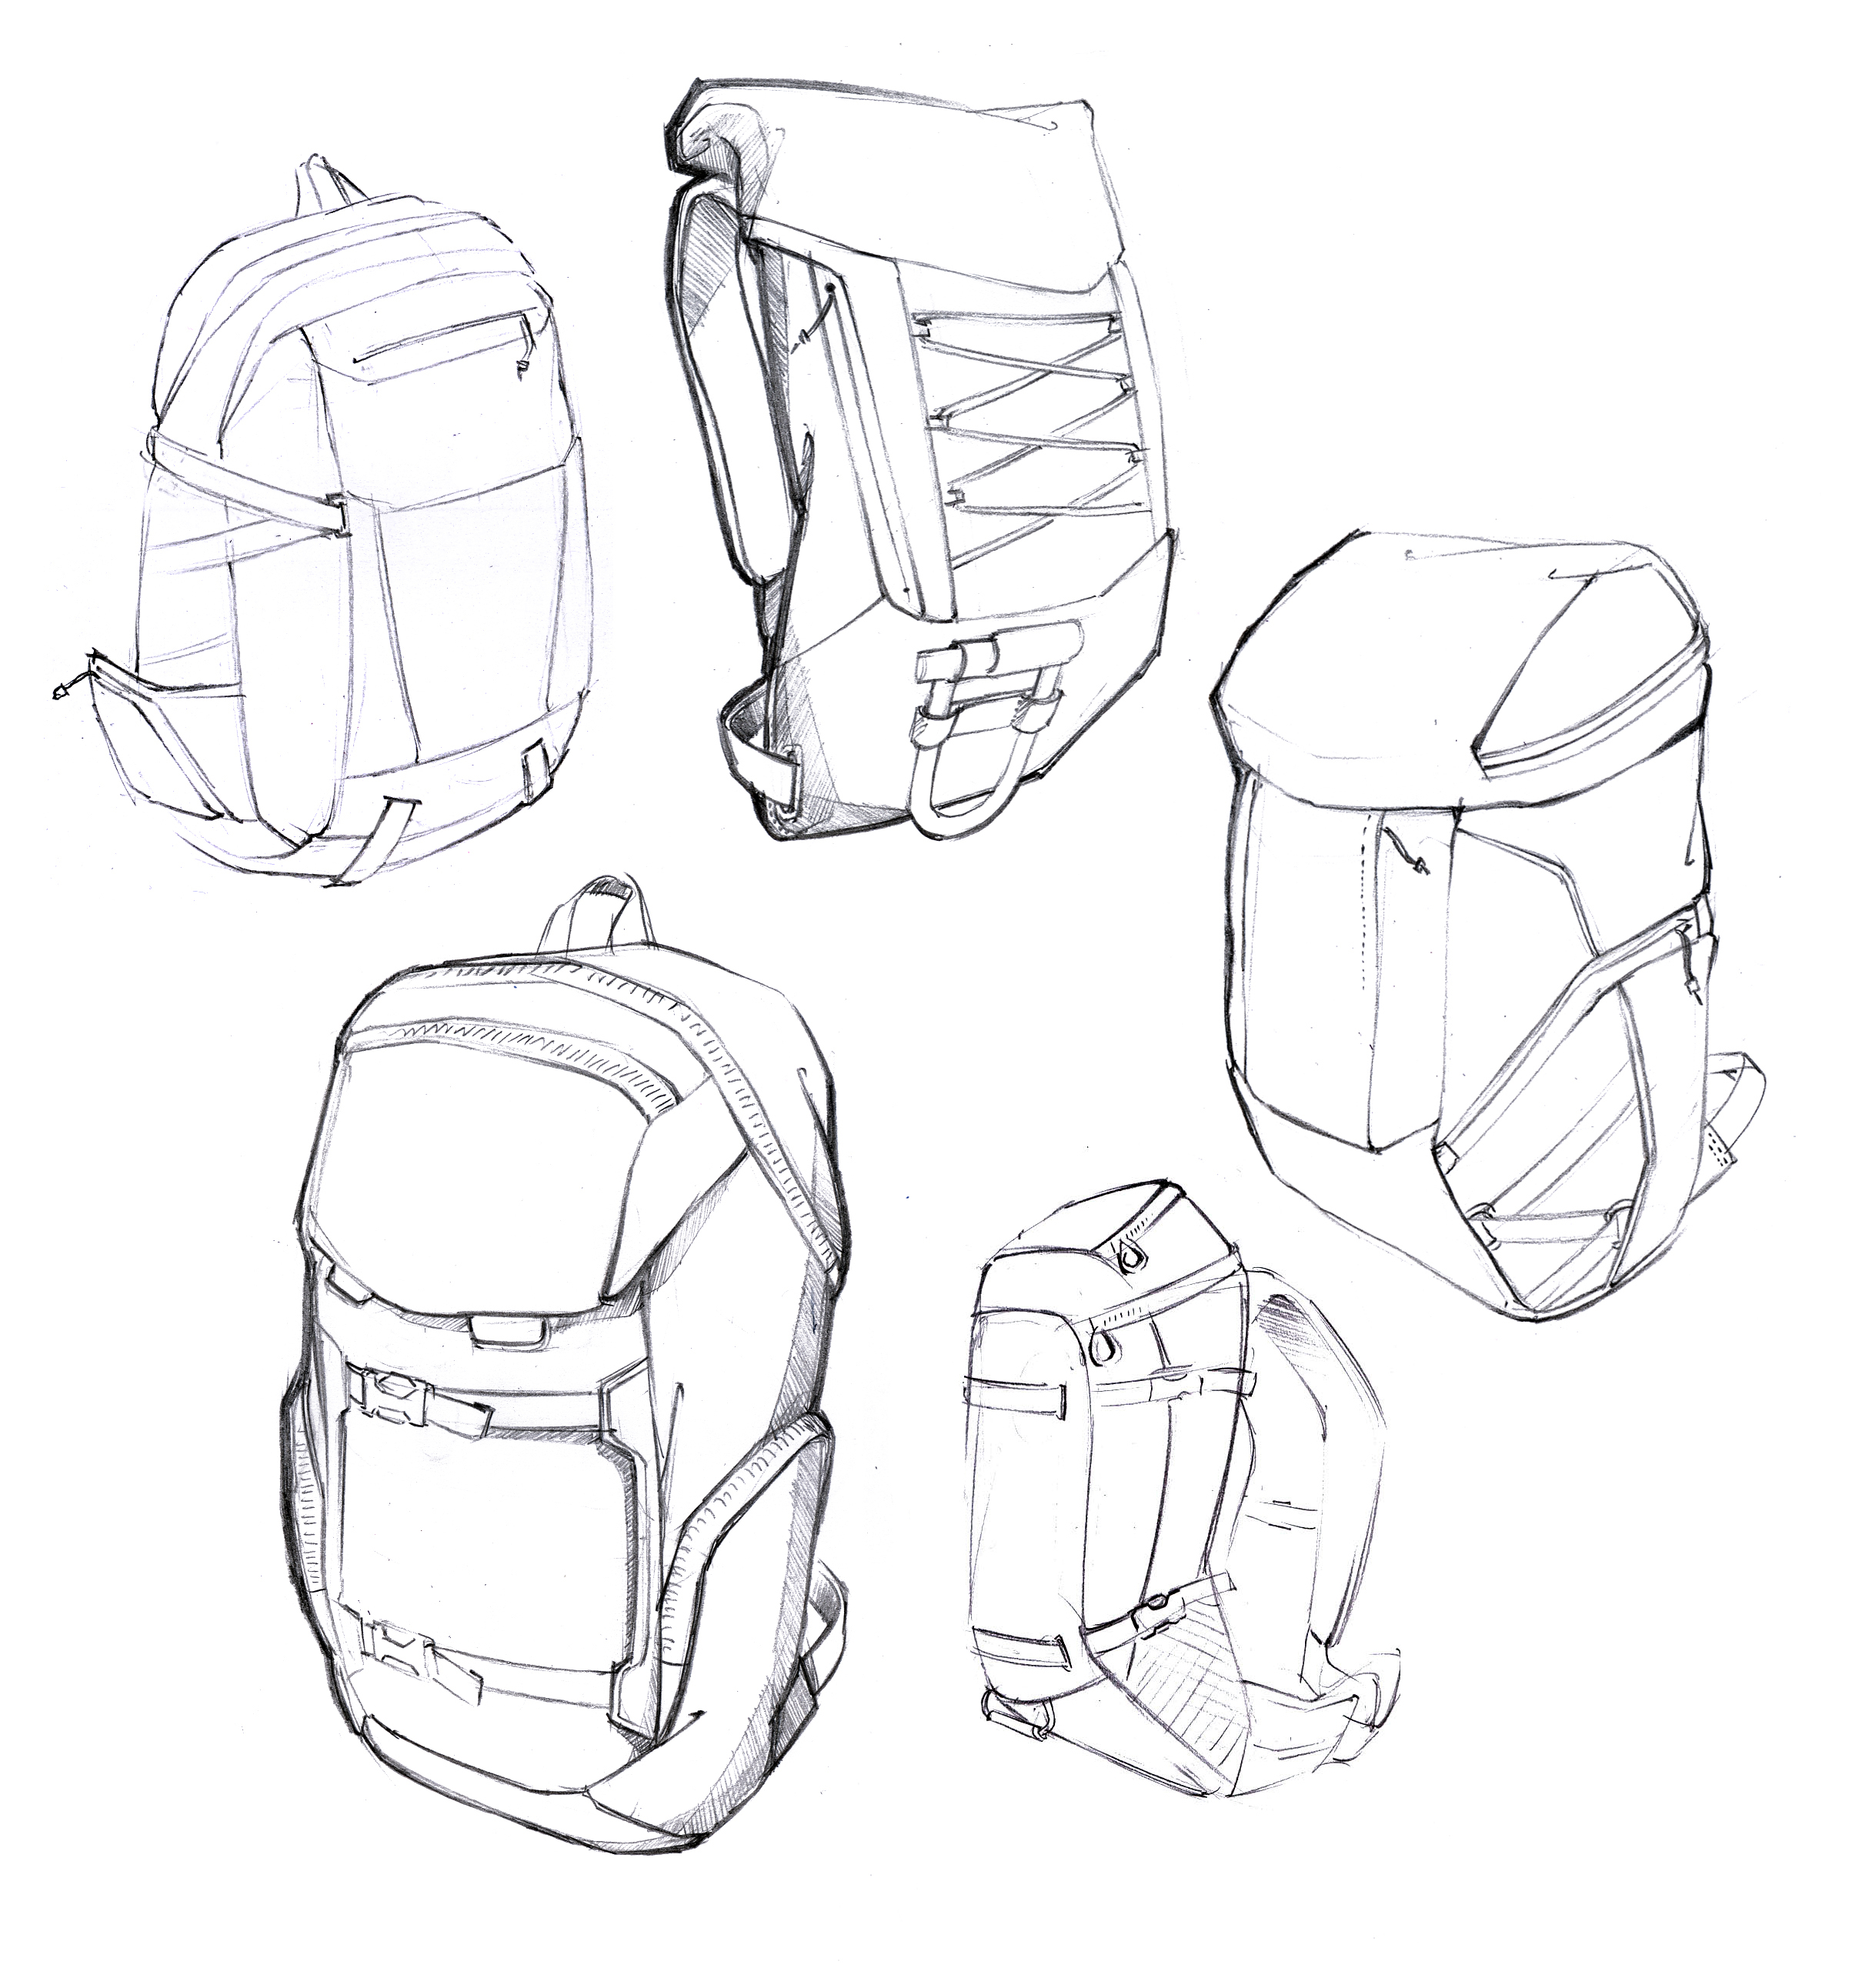 Backpack Sketches By Daniel Valsesia At Coroflot